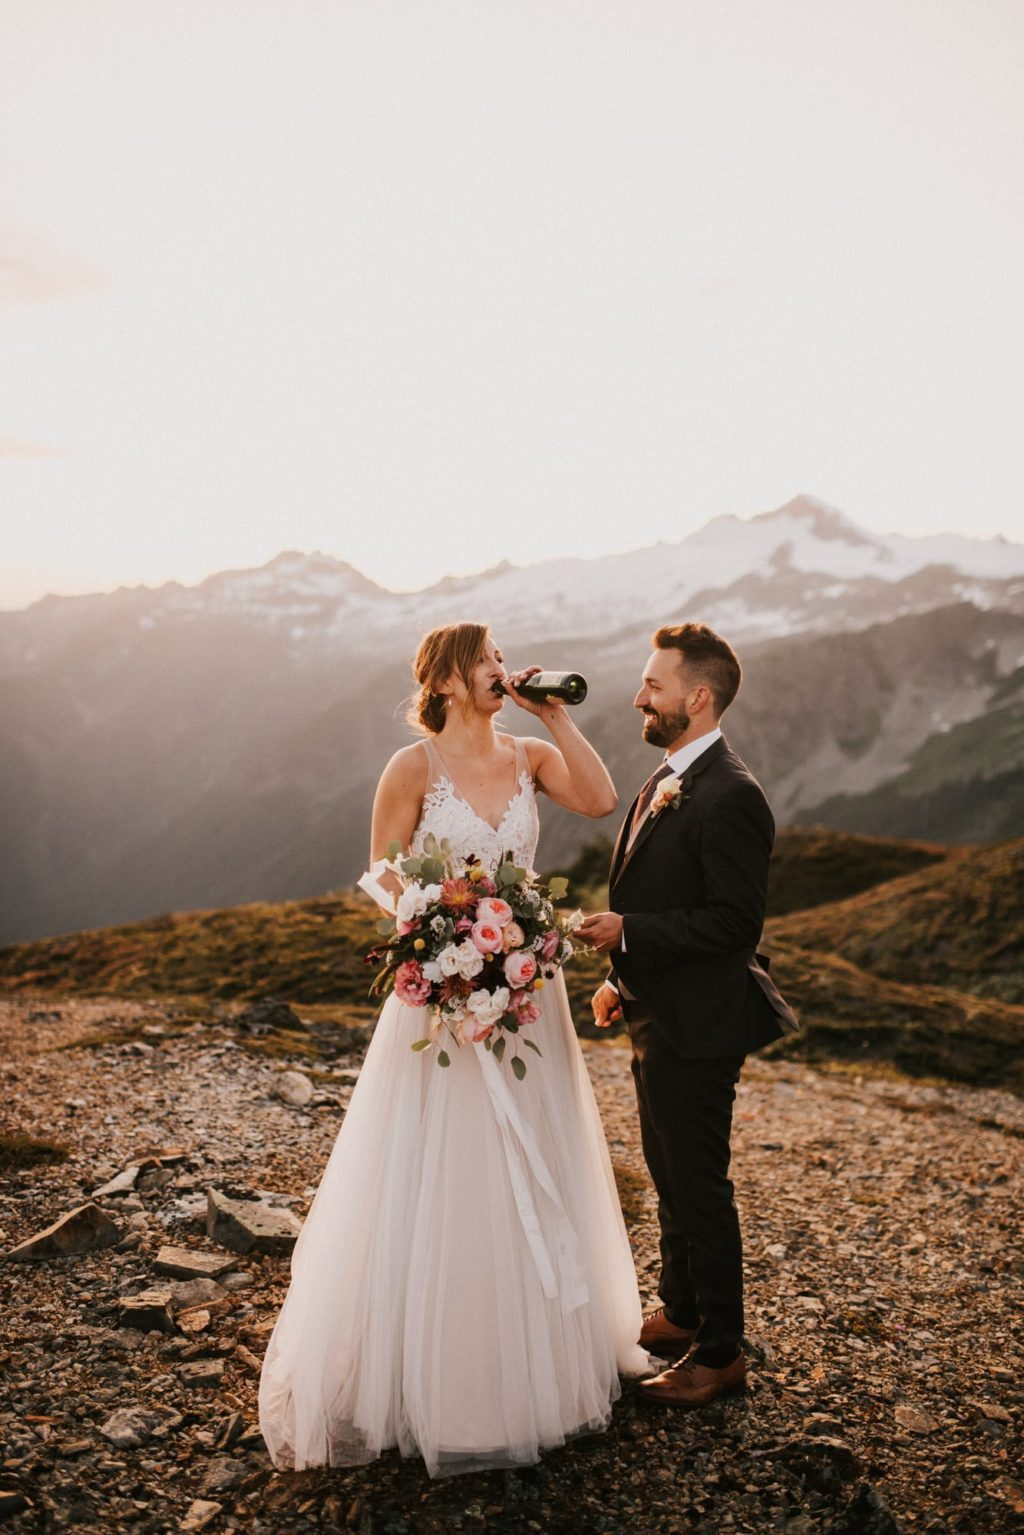 Drinking champagne in the mountains of washington